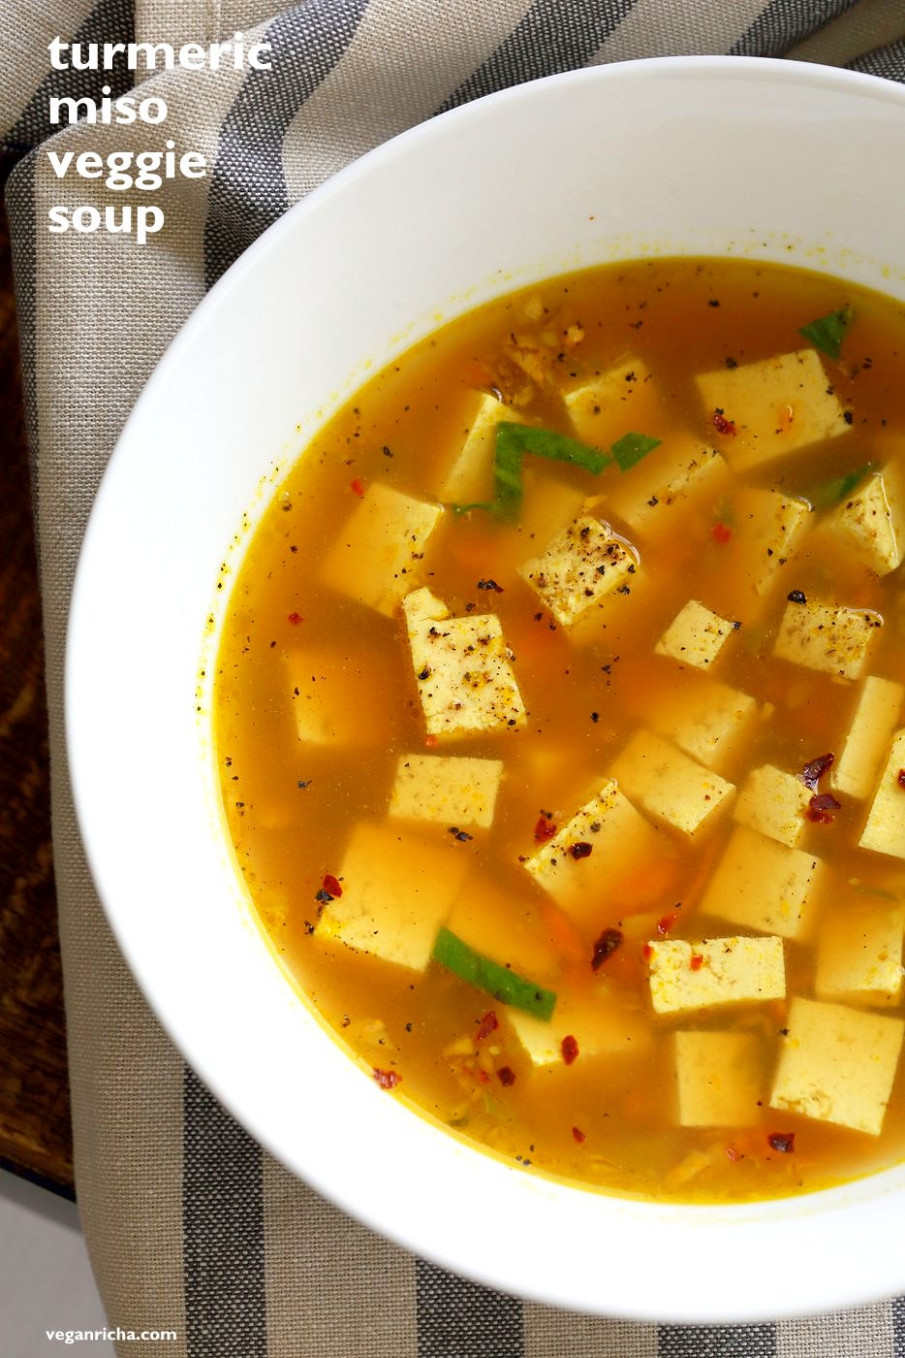 Turmeric Miso Soup With Ginger, Garlic and Tofu - recipes for vegetarian soup